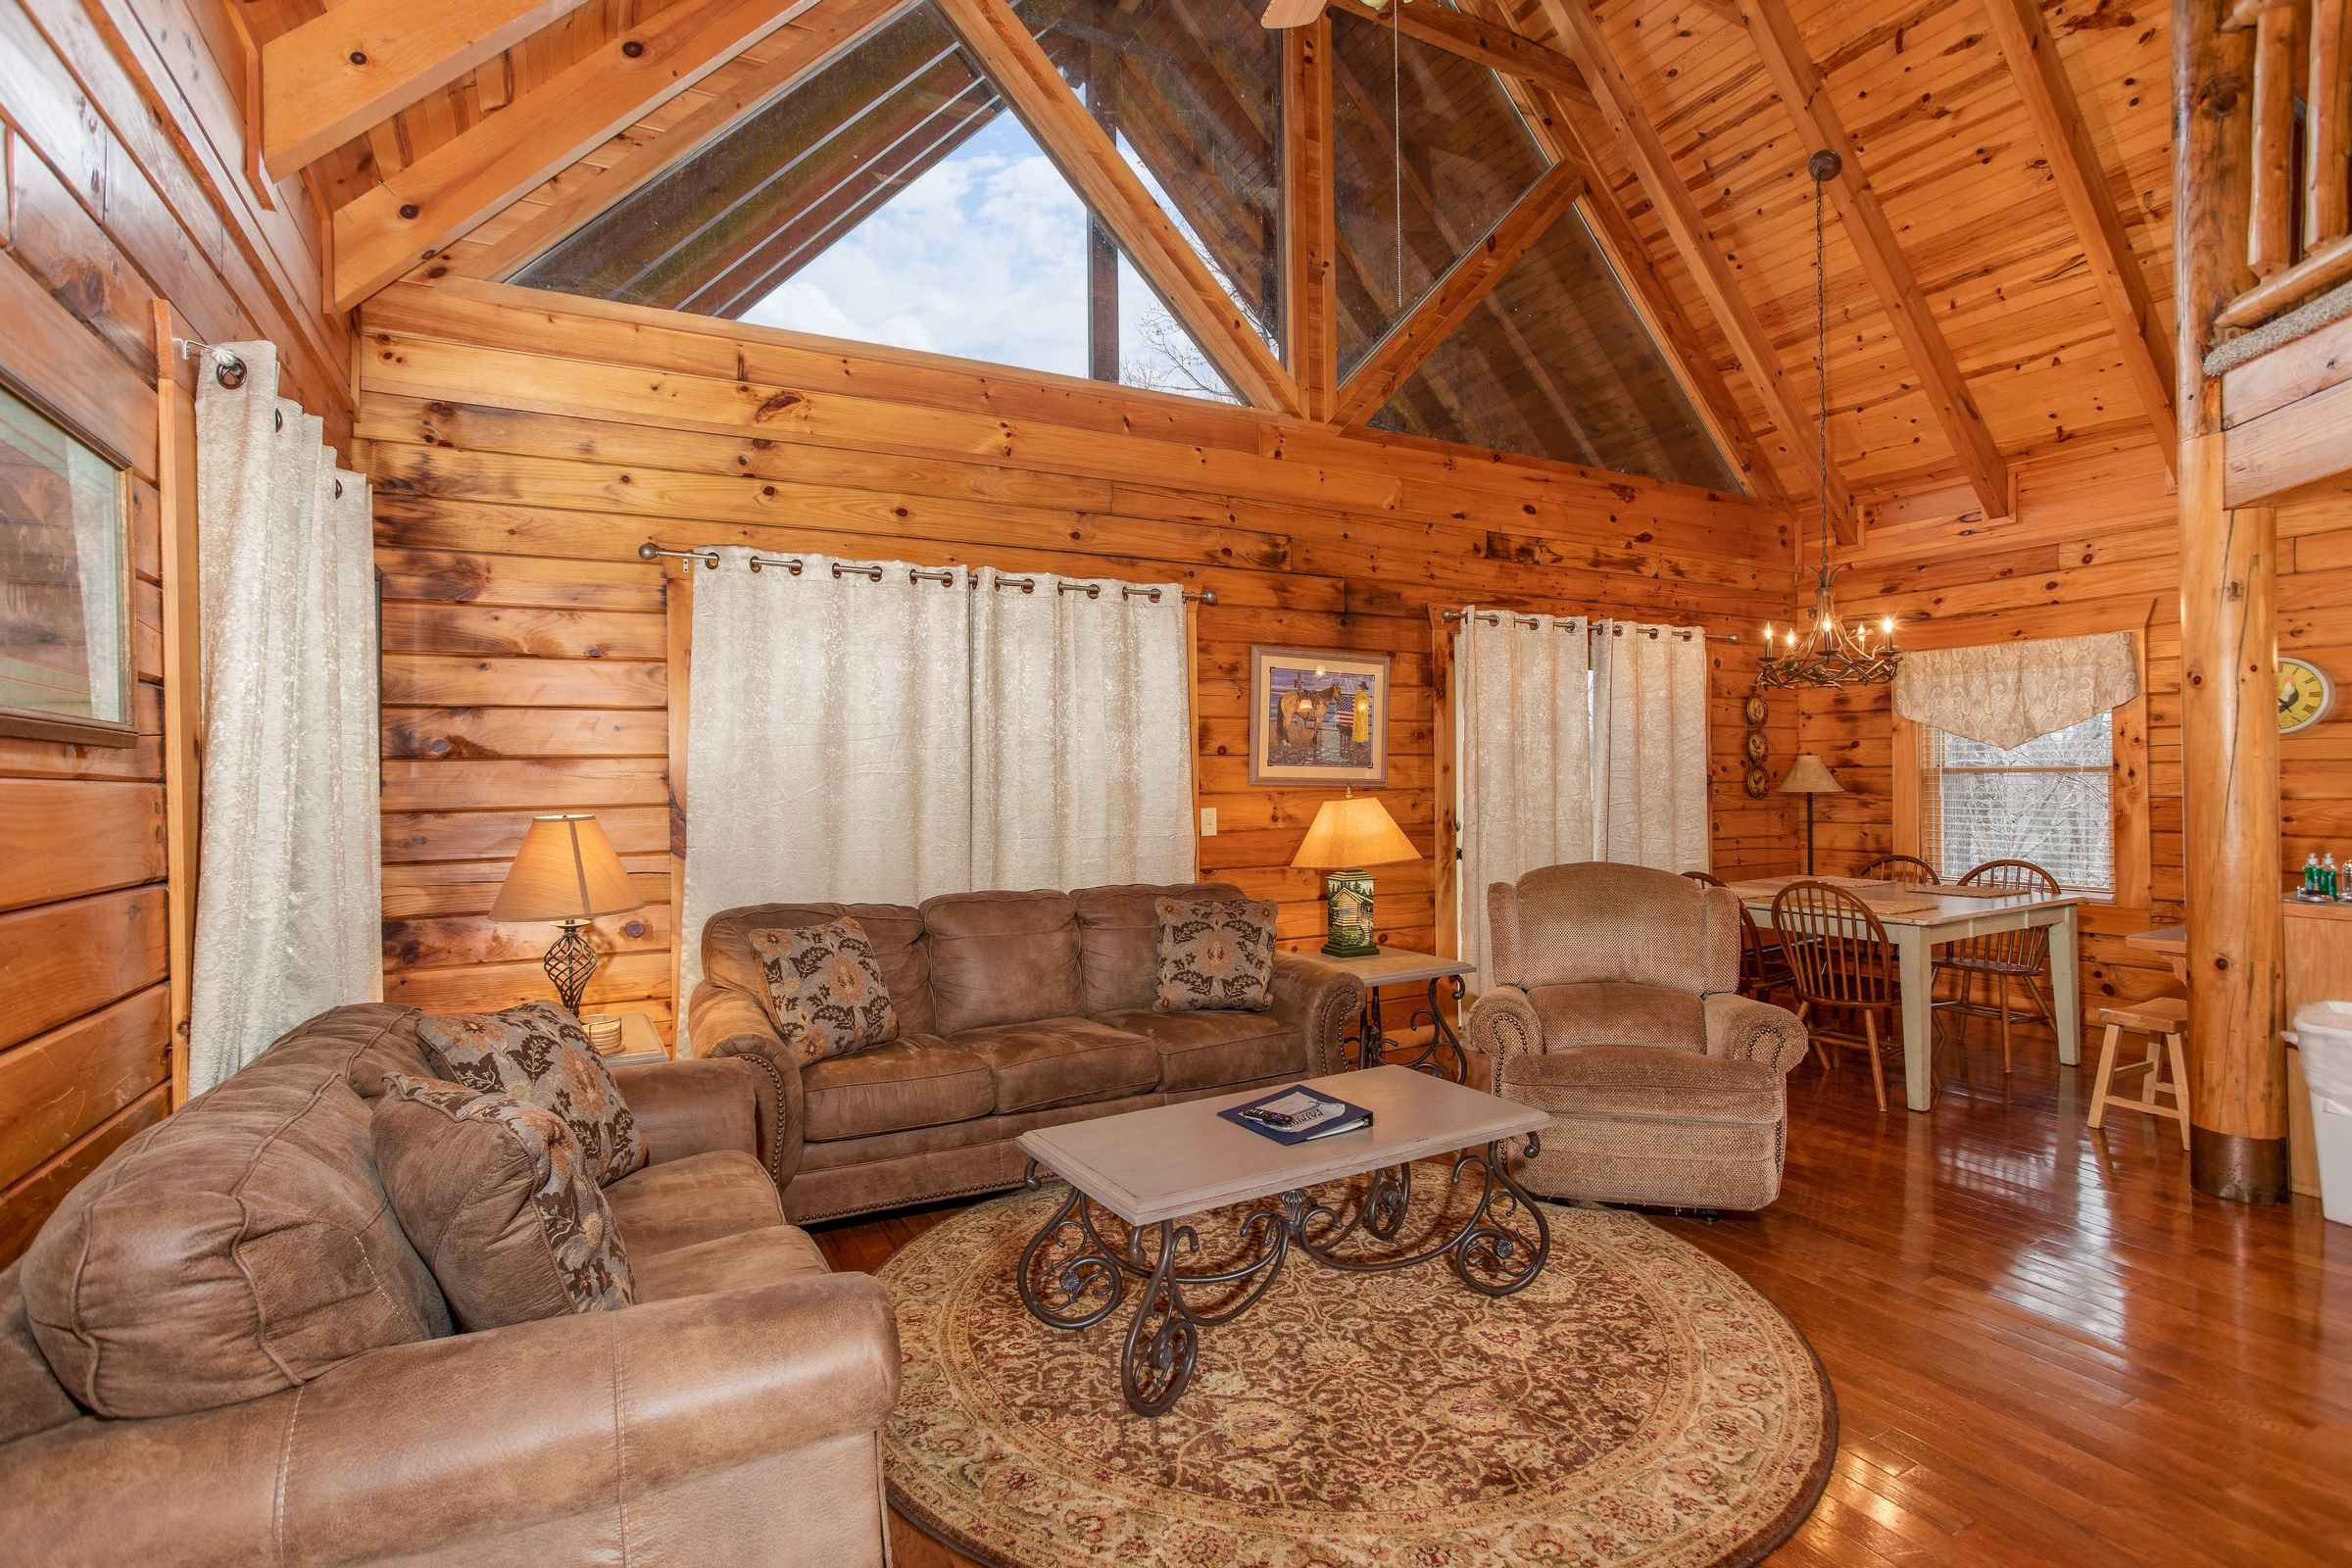 The Cowboy Way Deluxe 4 Bedroom Pigeon Forge Cabin Rental Cabin Pigeon Forge Cabin Rentals Cute Cabins